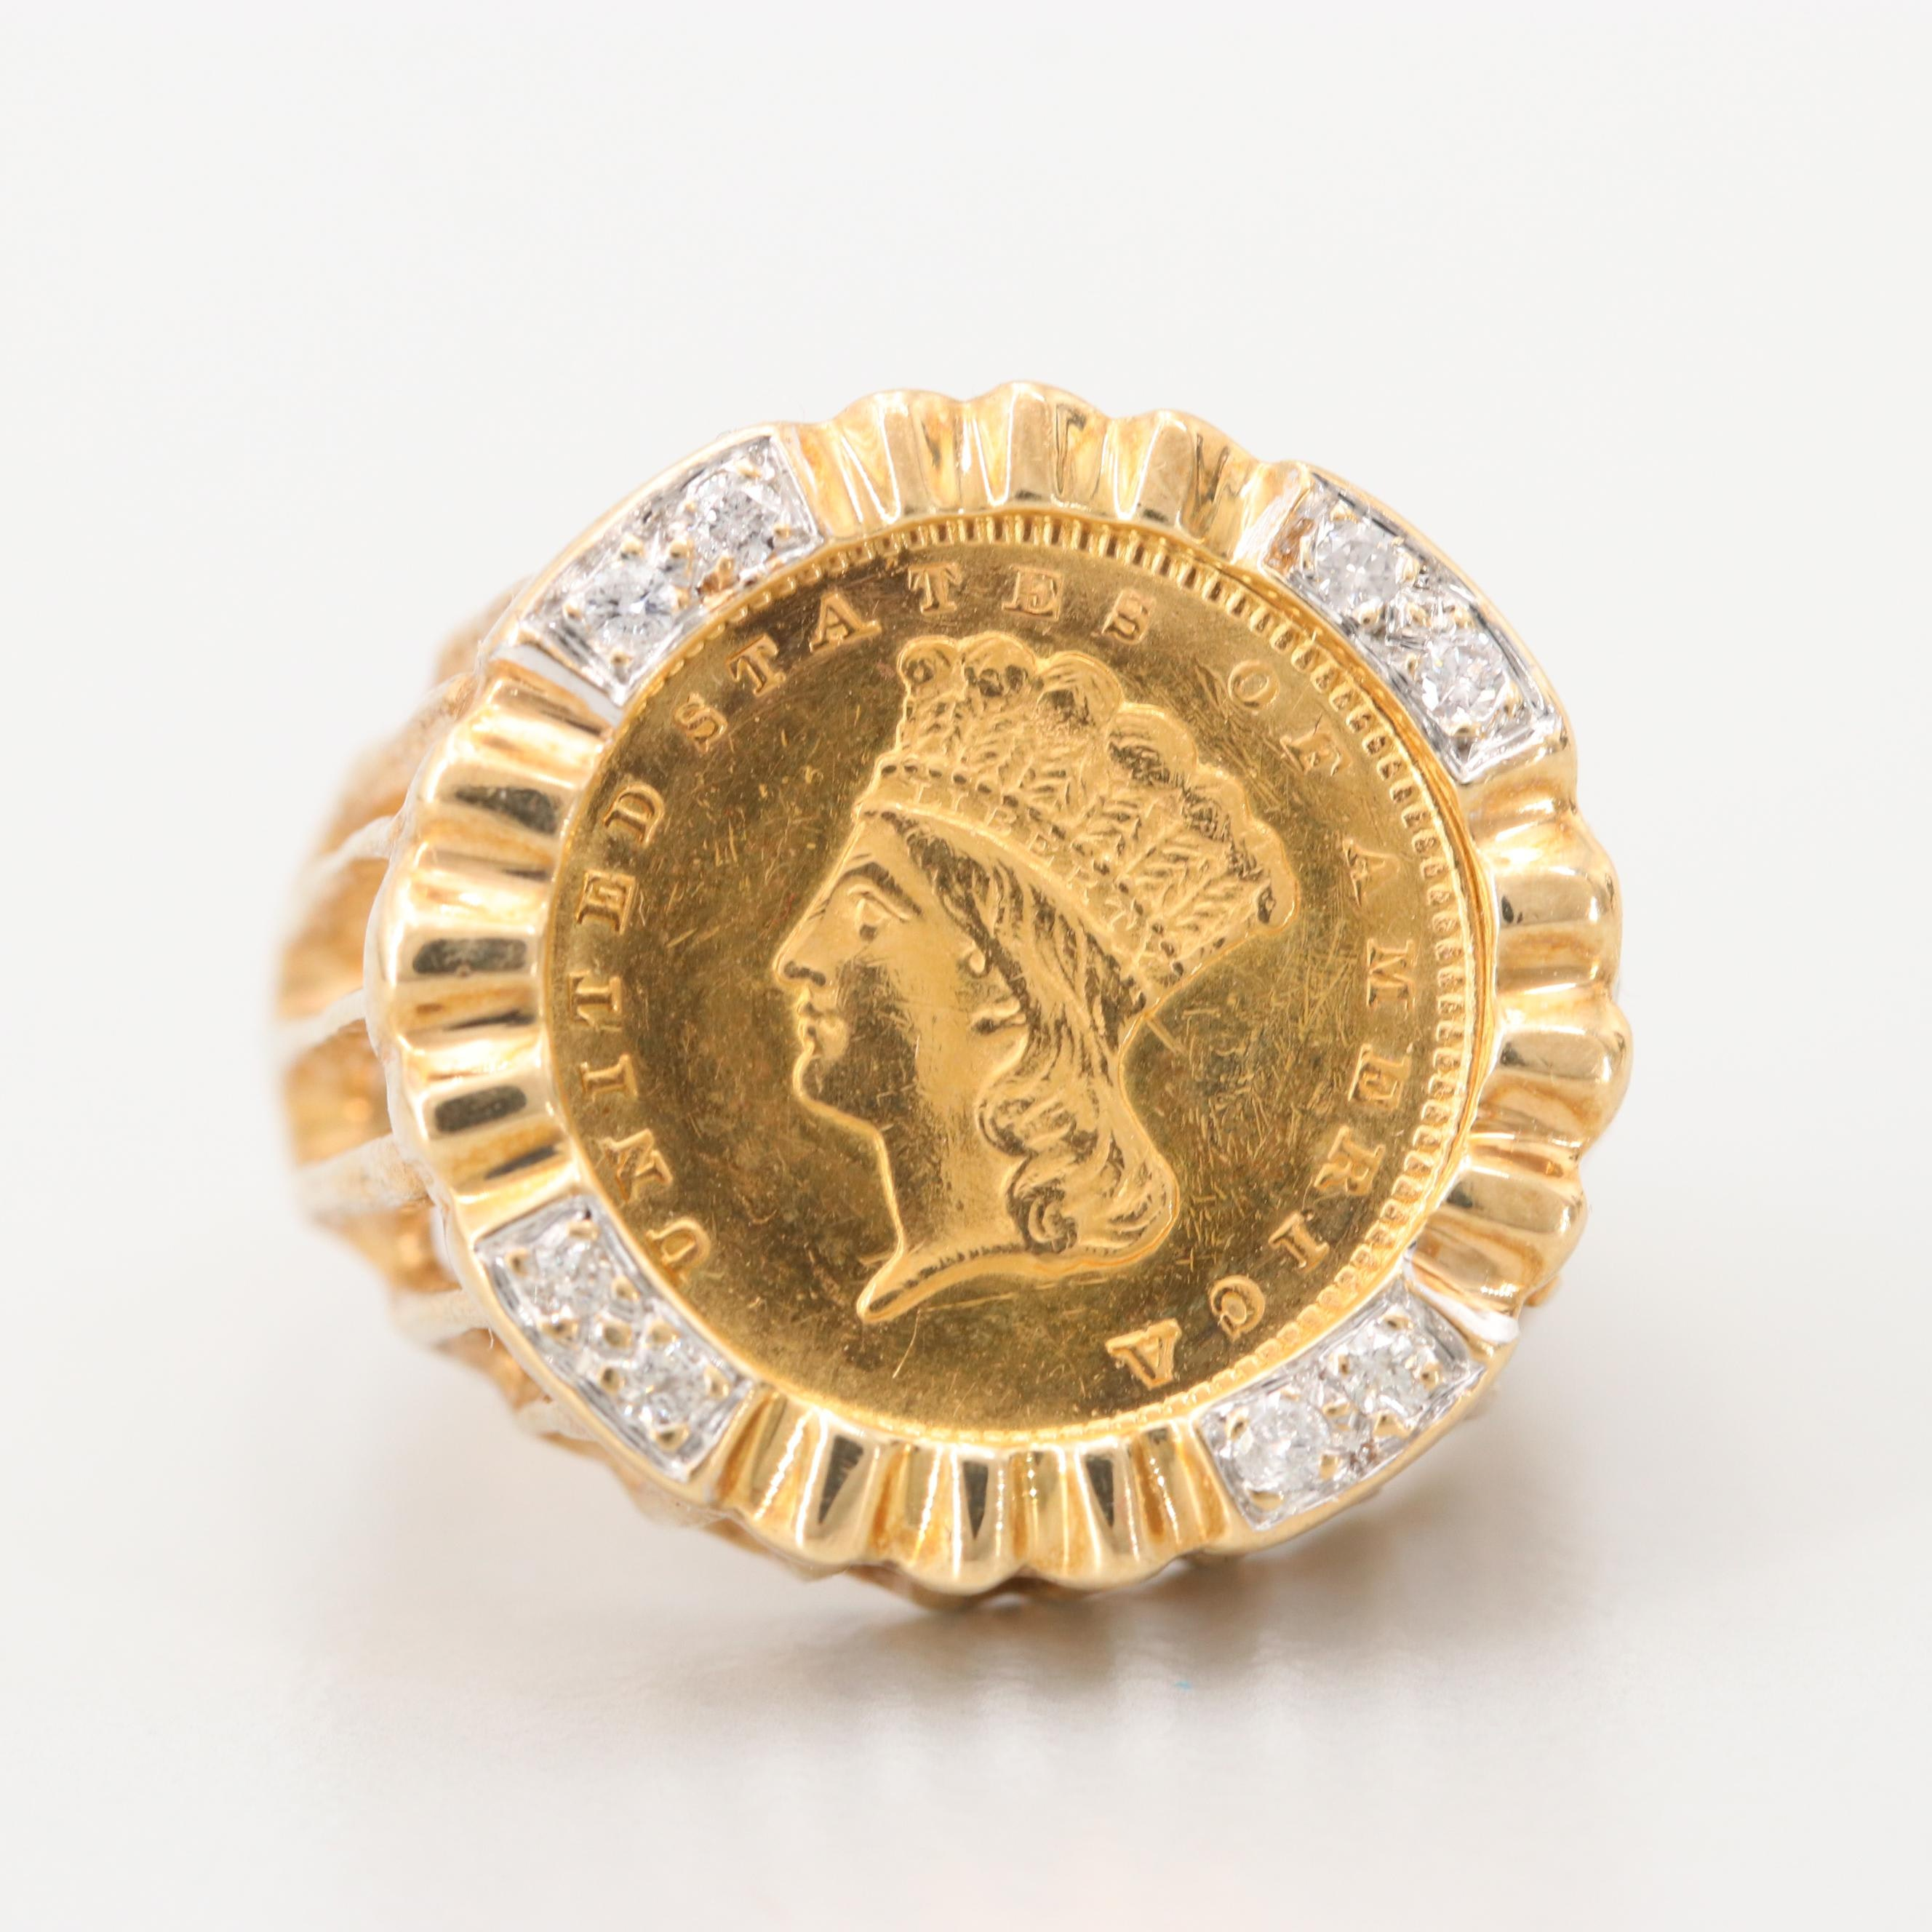 14K Yellow Gold Diamond Ring with an 1873 Indian Head Princess Gold Dollar Coin